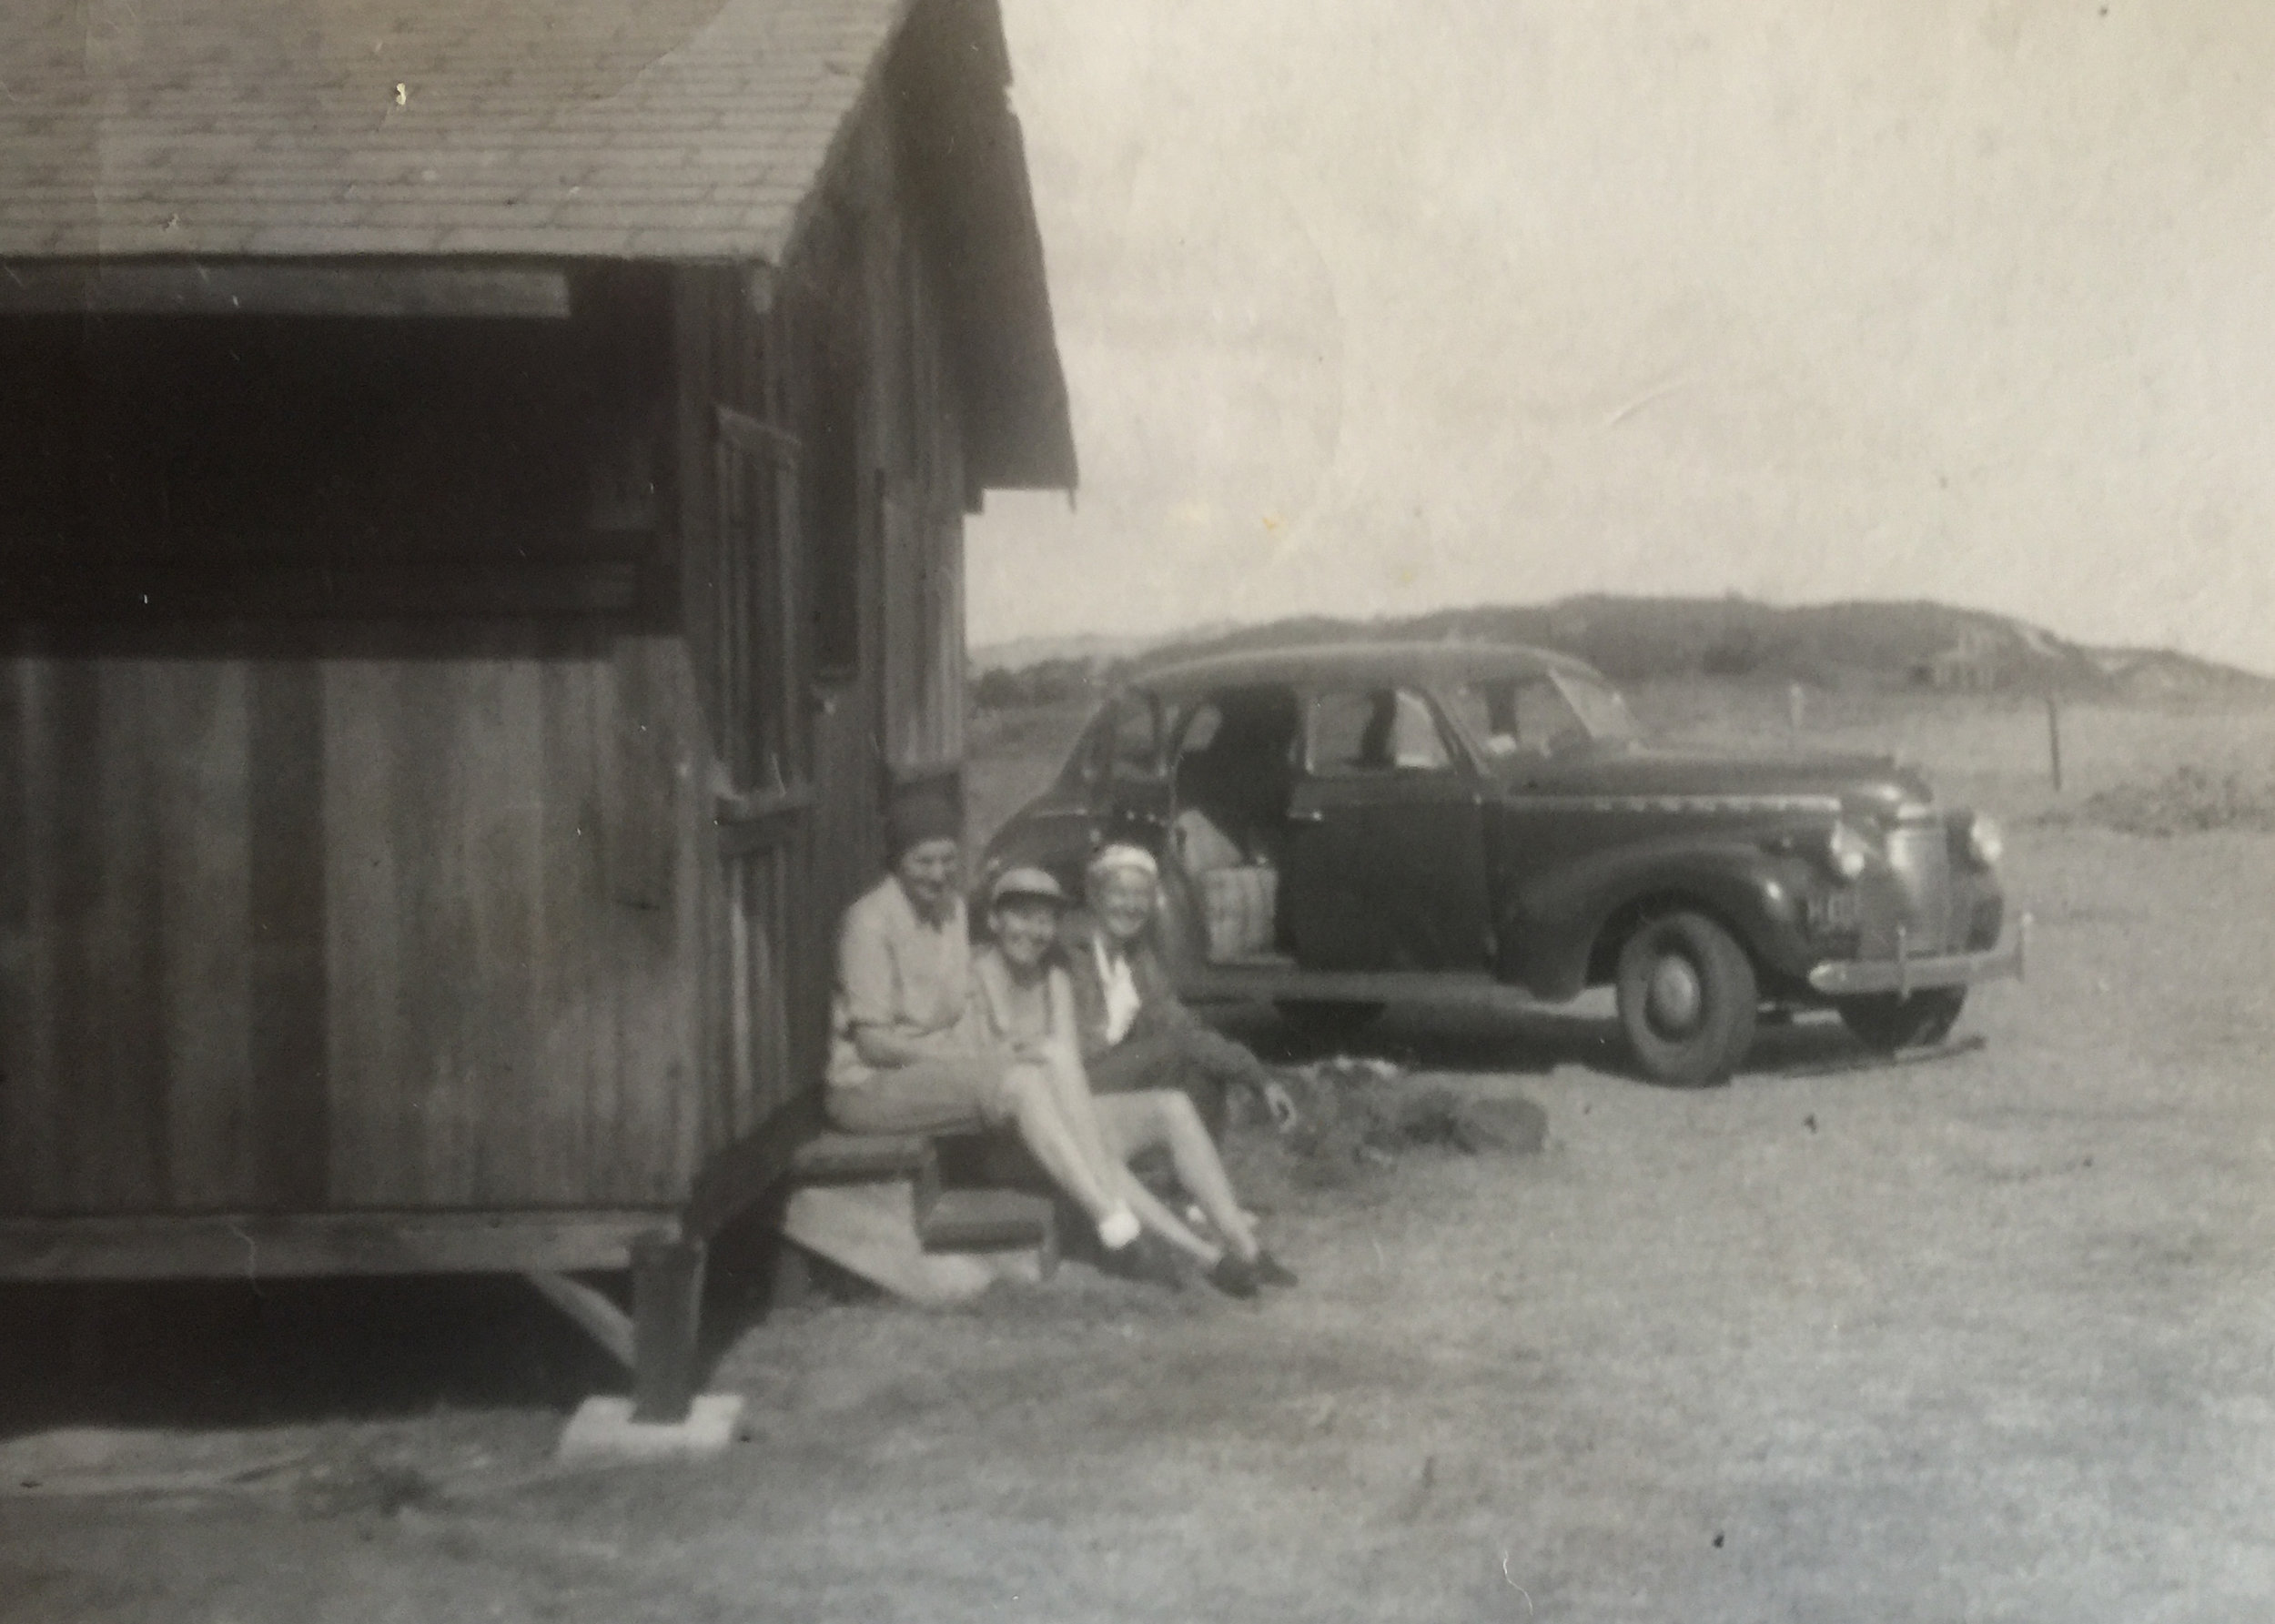 Taking a break in front of the Gillin House, circa 1950